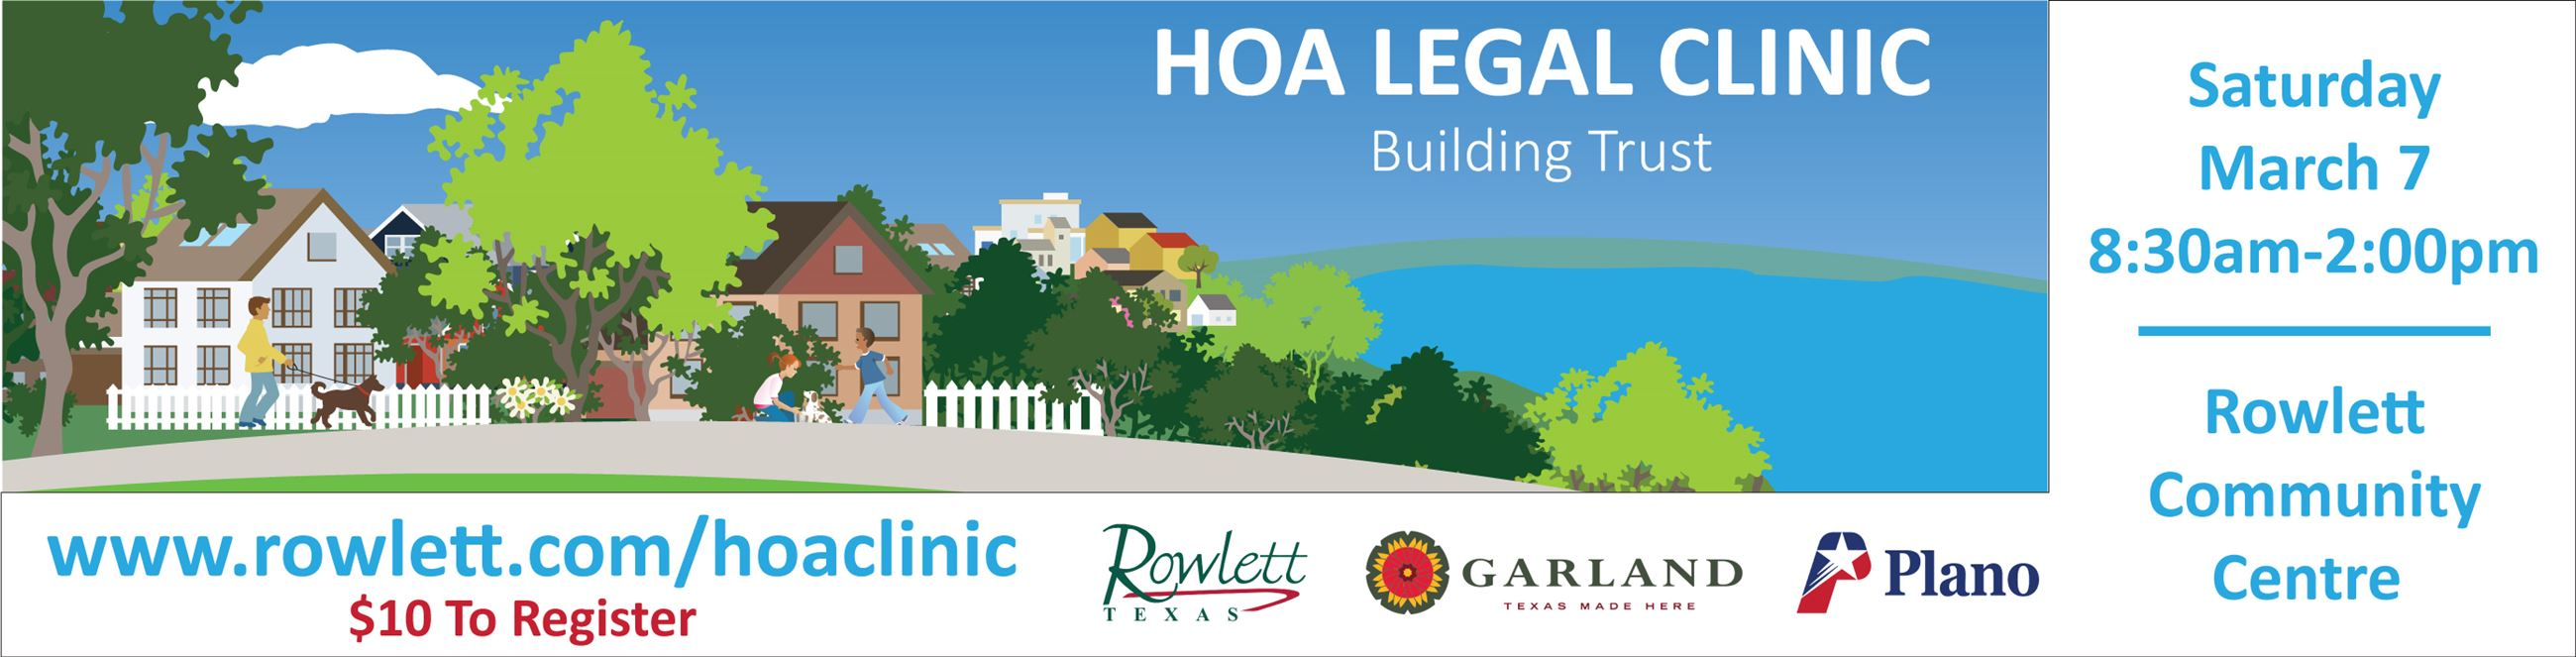 2020 HOA legal clinic, Saturday, March 7, 8:30 a.m. to 2 p.m.  | Rowlett Community Centre | www.rowl